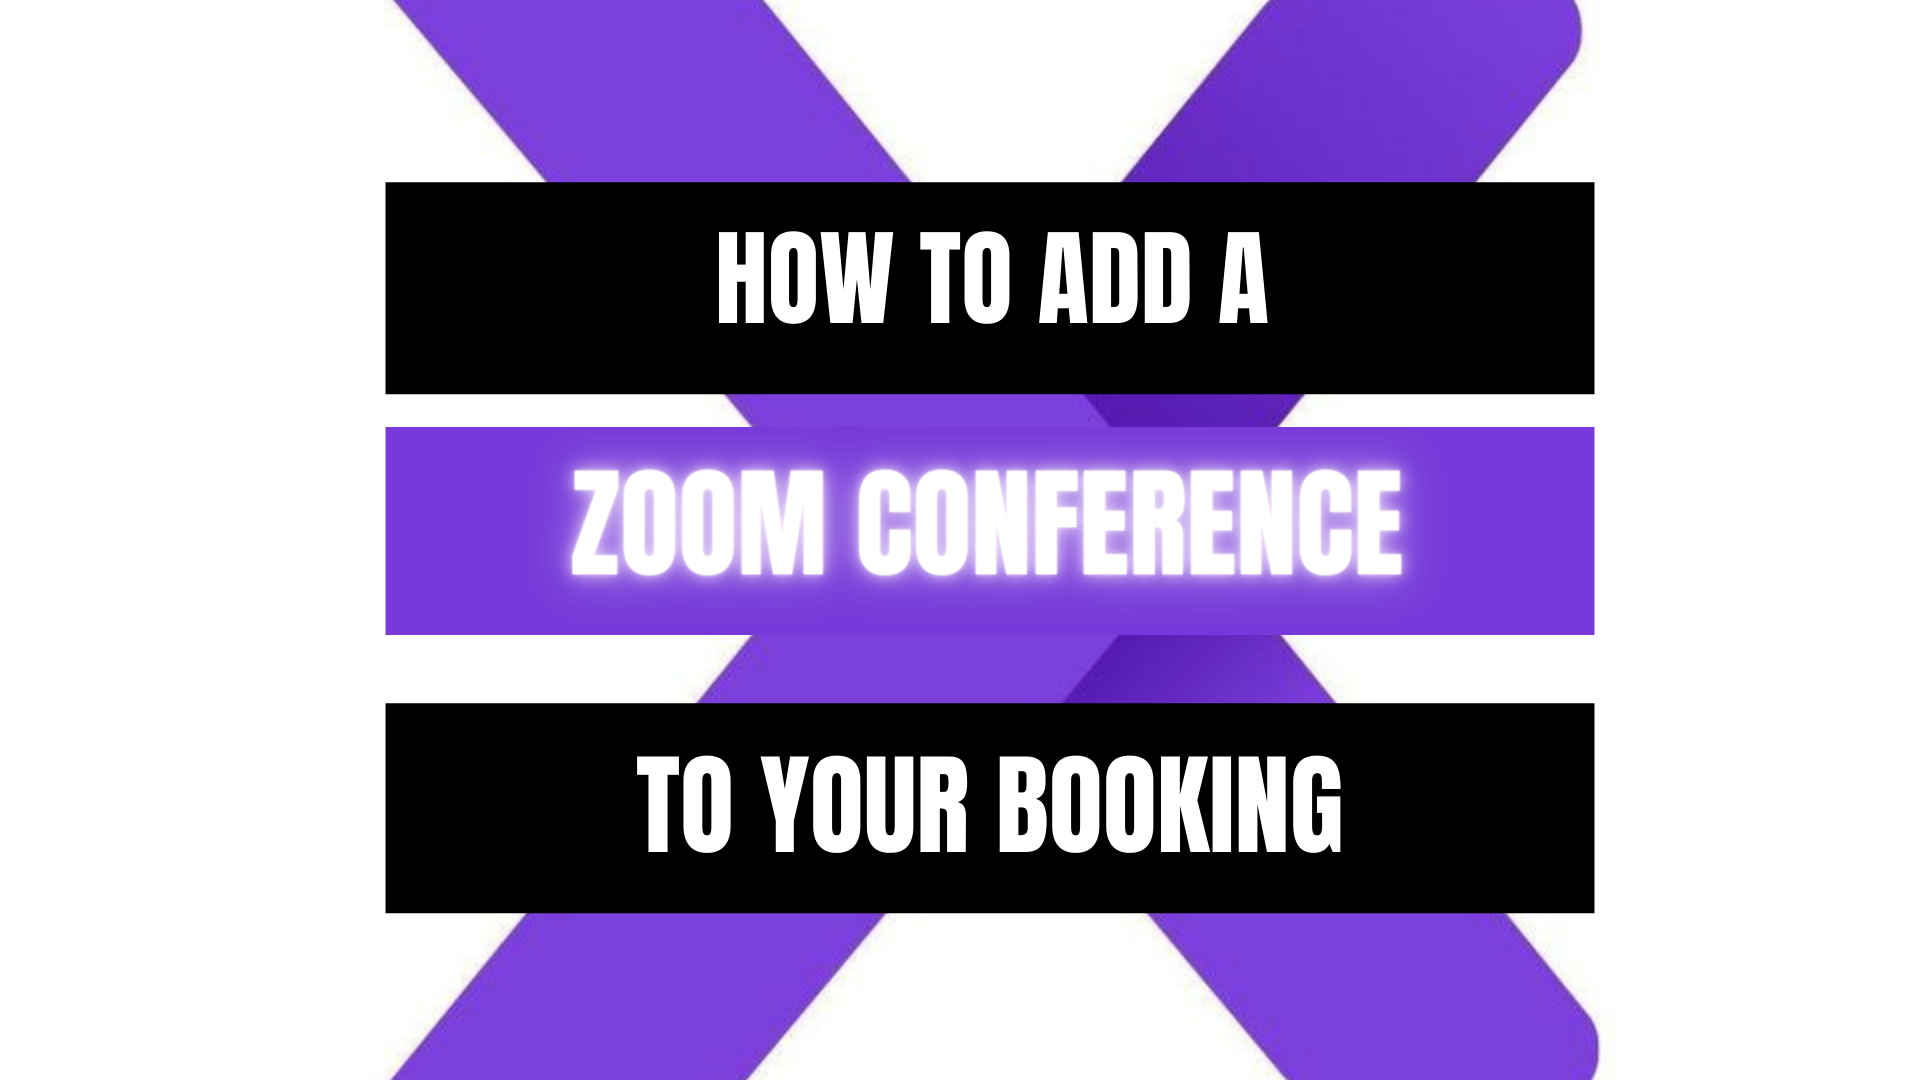 Peekaboox - How to add a Zoom Conference